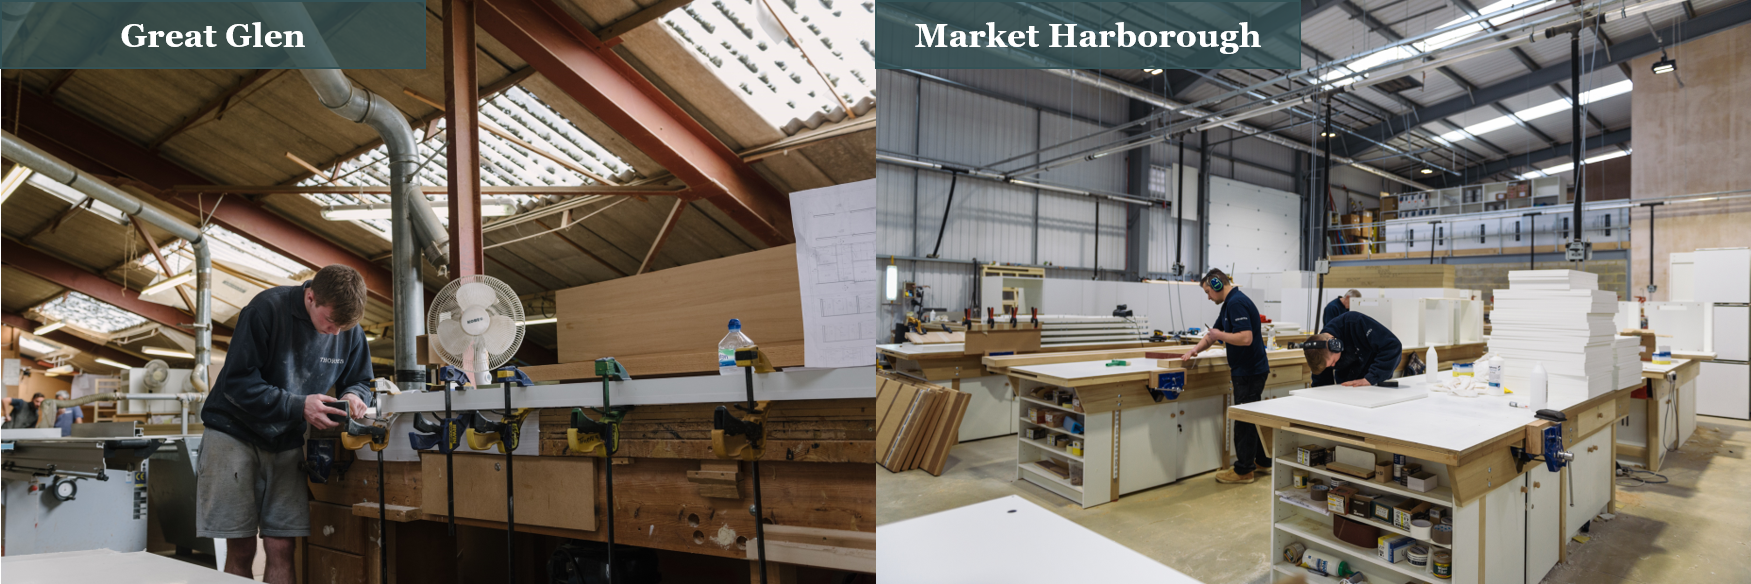 Thorpes Joinery - Joiners Benches: Great Glen Vs Market Harborough